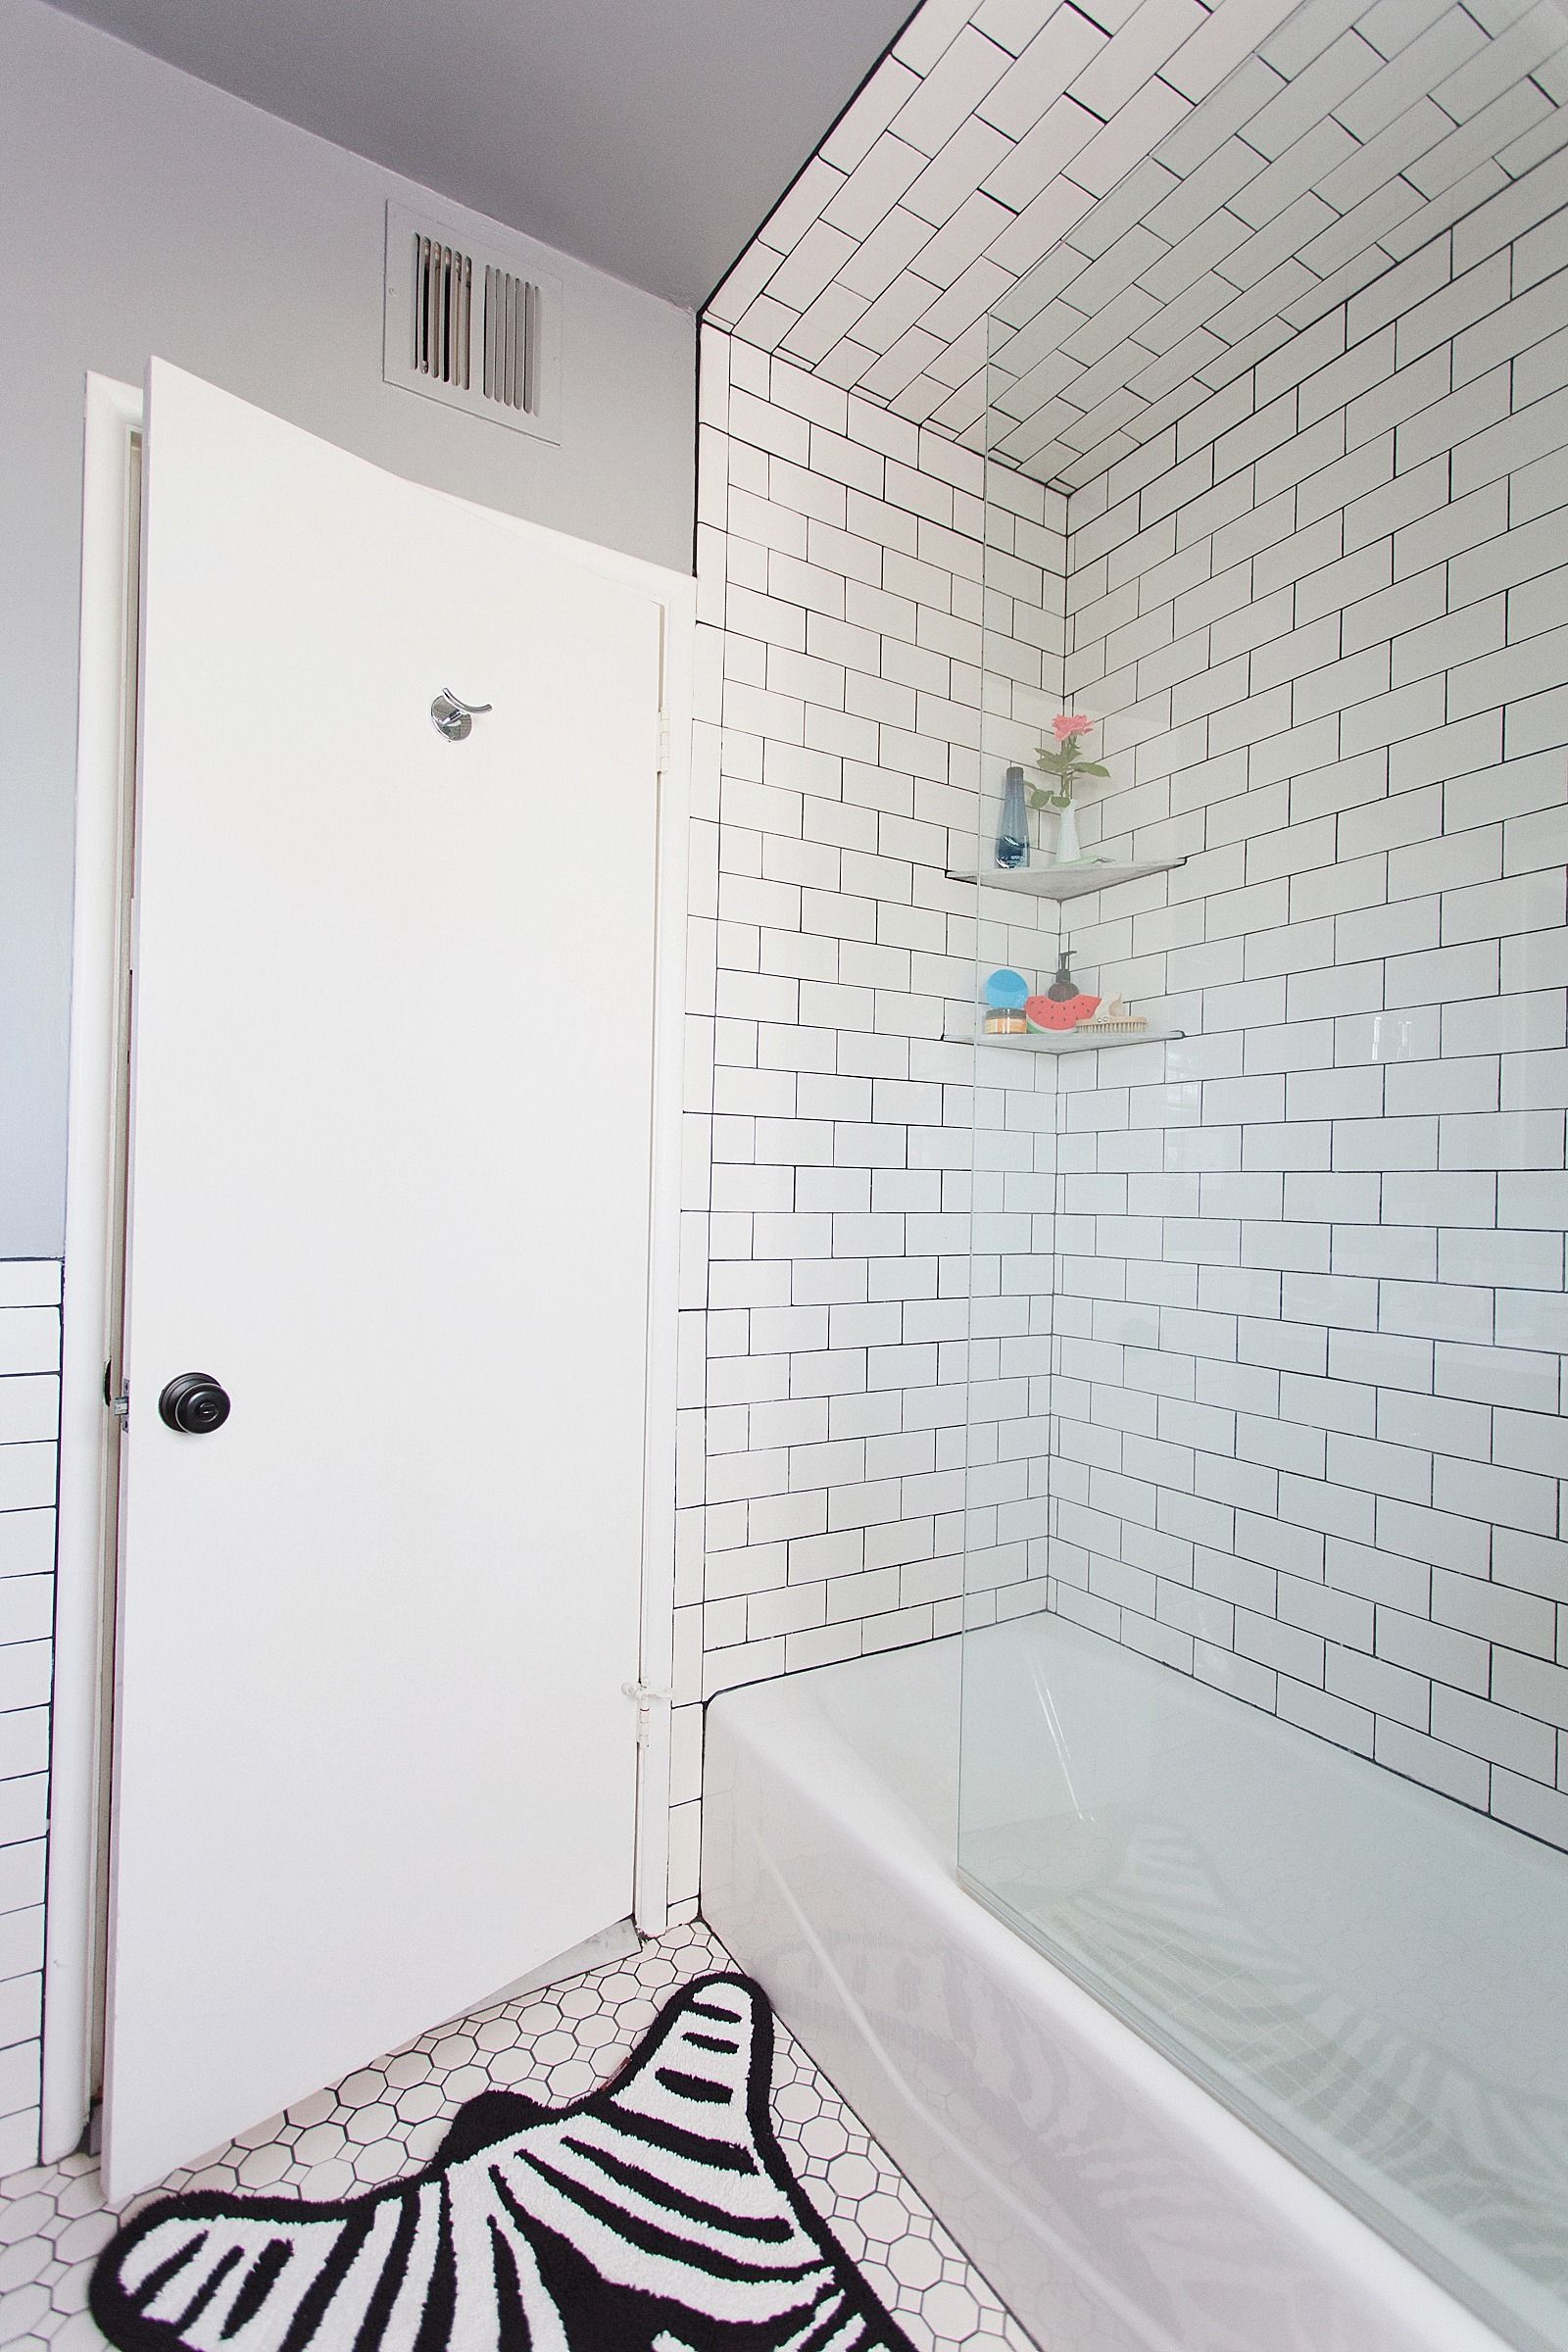 How to refresh a bathroom style | Pinterest | Black grout, White ...